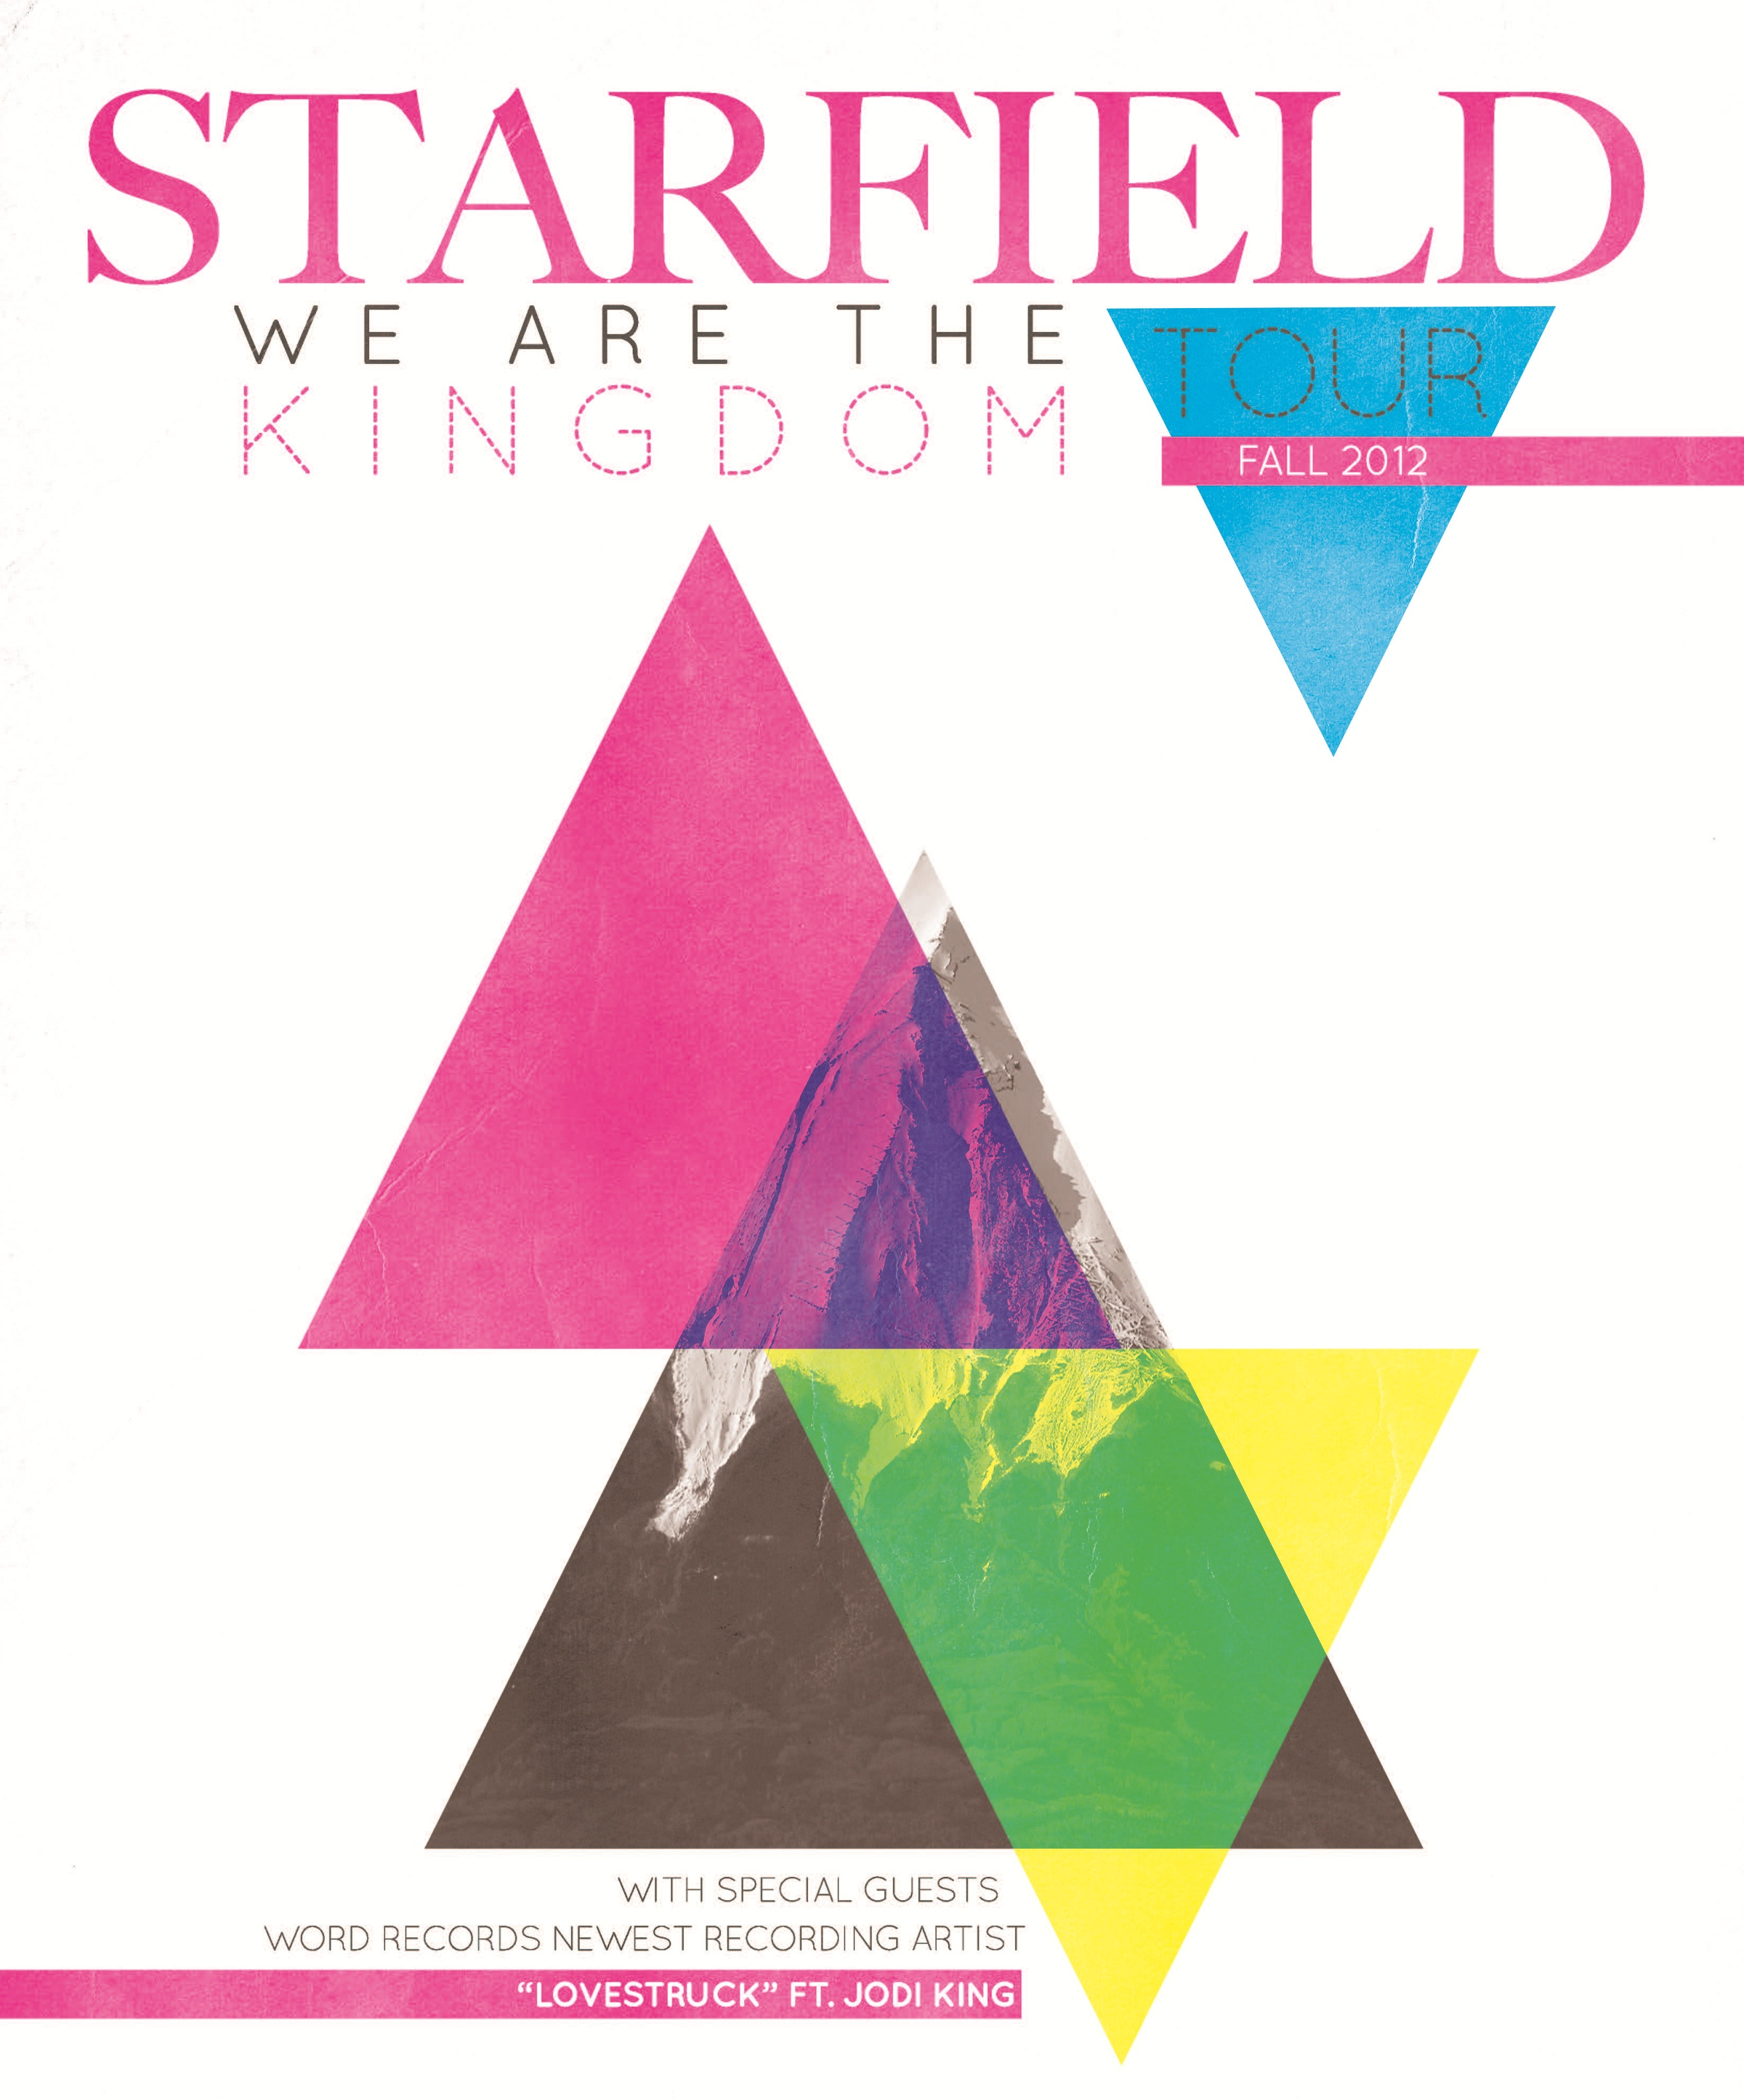 We The Kingdom: Tickets For STARFIELD WE ARE THE KINGDOM TOUR In Montreal